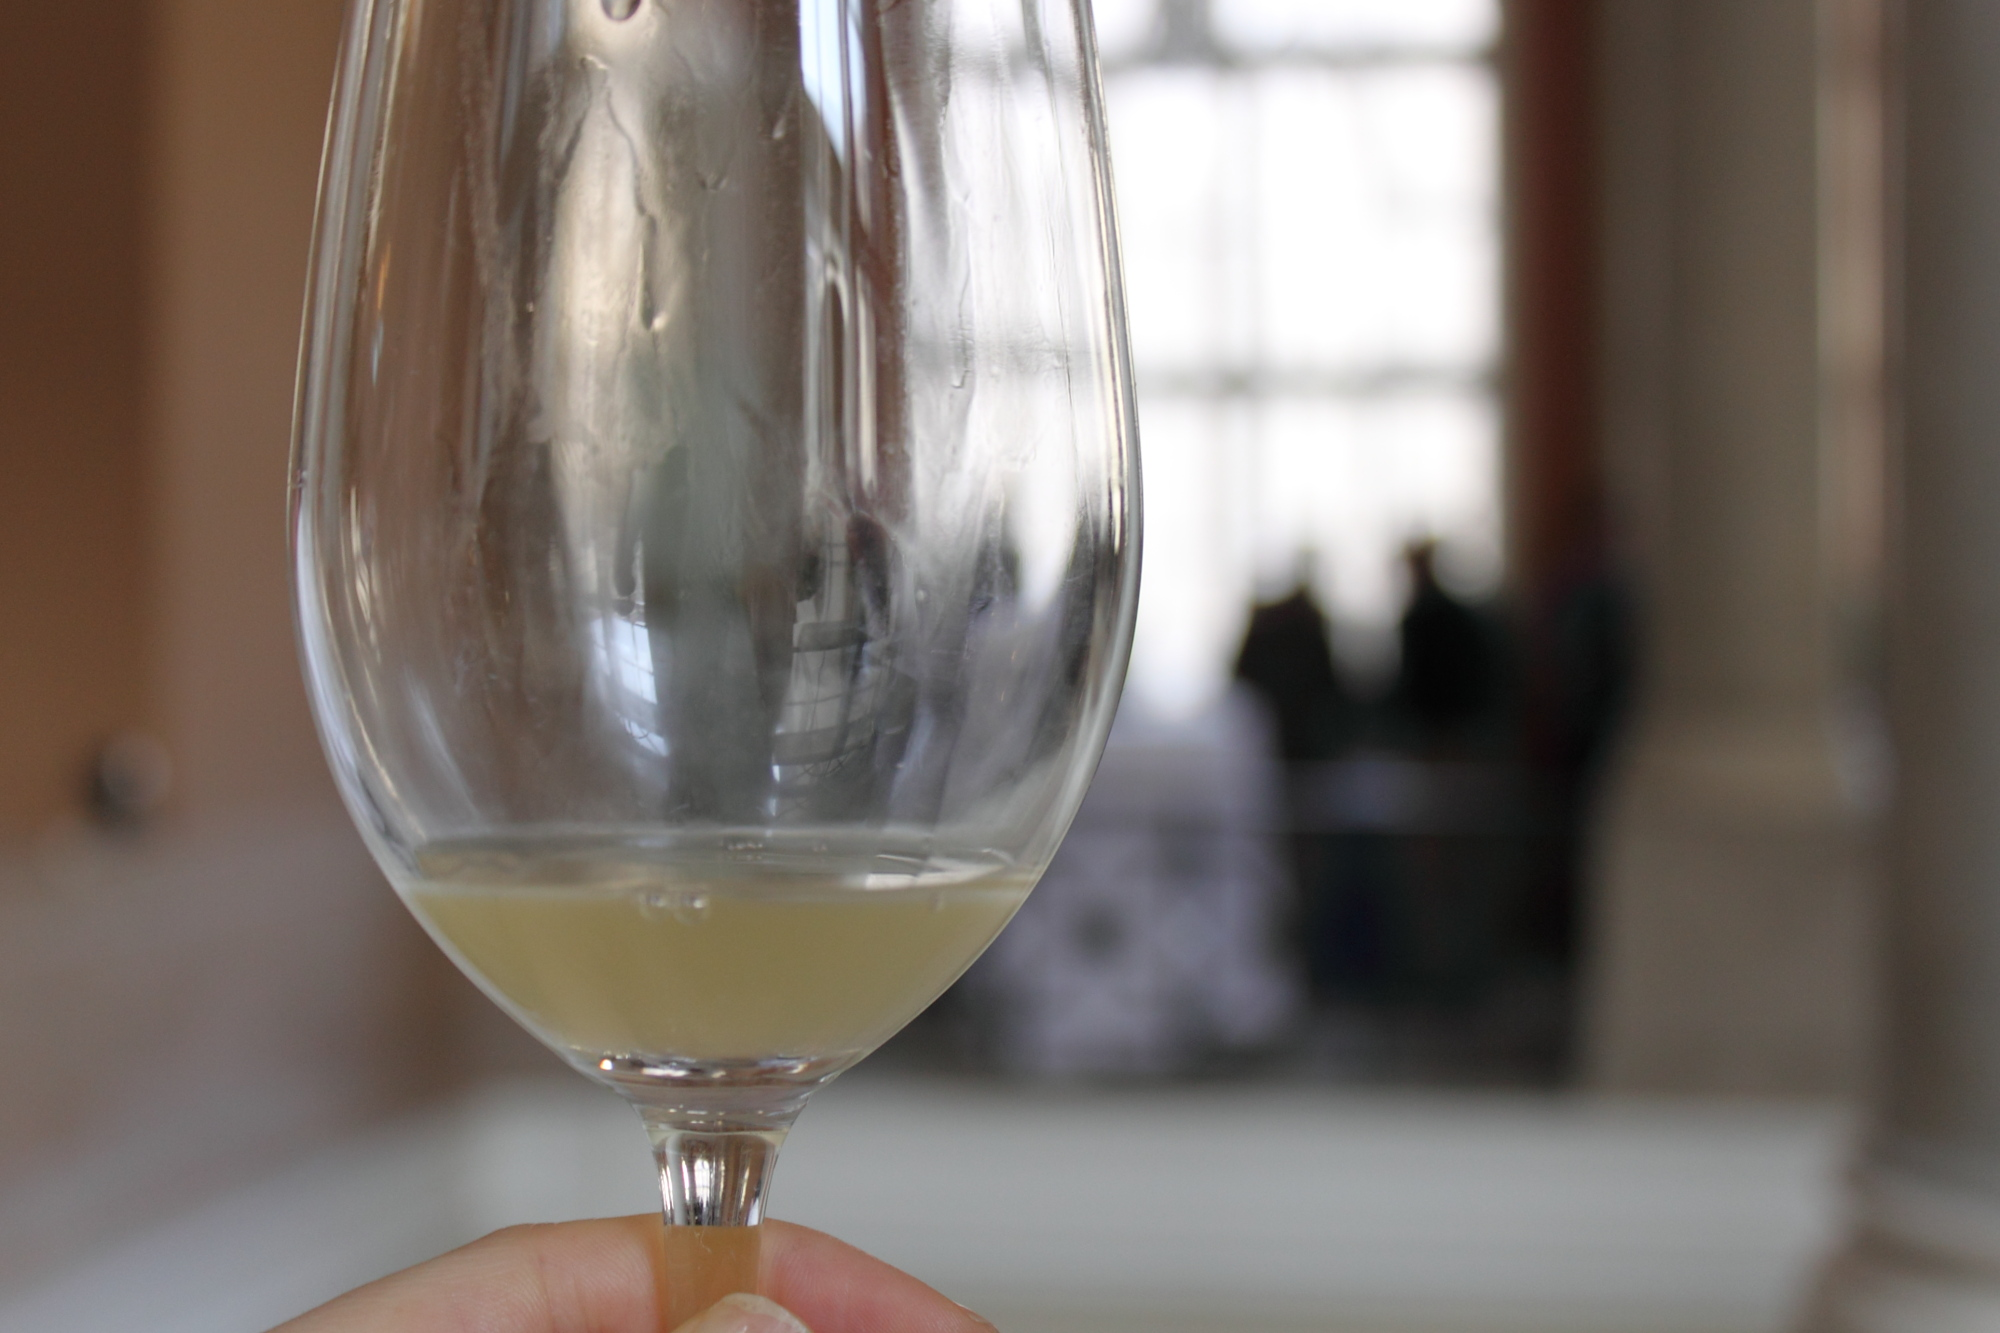 Barrel sample